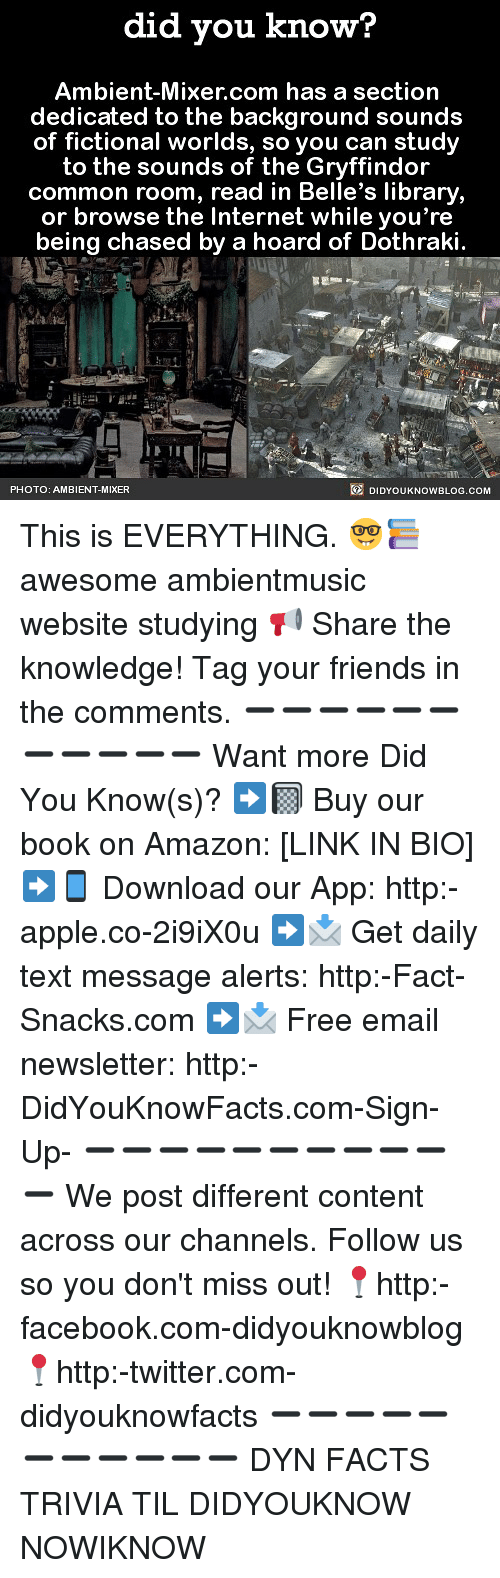 Amazon, Apple, and Facebook: did you know?  Ambient-Mixer.com has a section  dedicated to the background sounds  of fictional worlds, so you can study  to the sounds of the Gryffindor  common room, read in Belle's library,  or browse the Internet while you're  being chased by a hoard of Dothraki  PHOTO: AMBIENT-MIXER  DIDYOUKNOWBLOG.COM This is EVERYTHING. 🤓📚 awesome ambientmusic website studying 📢 Share the knowledge! Tag your friends in the comments. ➖➖➖➖➖➖➖➖➖➖➖ Want more Did You Know(s)? ➡📓 Buy our book on Amazon: [LINK IN BIO] ➡📱 Download our App: http:-apple.co-2i9iX0u ➡📩 Get daily text message alerts: http:-Fact-Snacks.com ➡📩 Free email newsletter: http:-DidYouKnowFacts.com-Sign-Up- ➖➖➖➖➖➖➖➖➖➖➖ We post different content across our channels. Follow us so you don't miss out! 📍http:-facebook.com-didyouknowblog 📍http:-twitter.com-didyouknowfacts ➖➖➖➖➖➖➖➖➖➖➖ DYN FACTS TRIVIA TIL DIDYOUKNOW NOWIKNOW